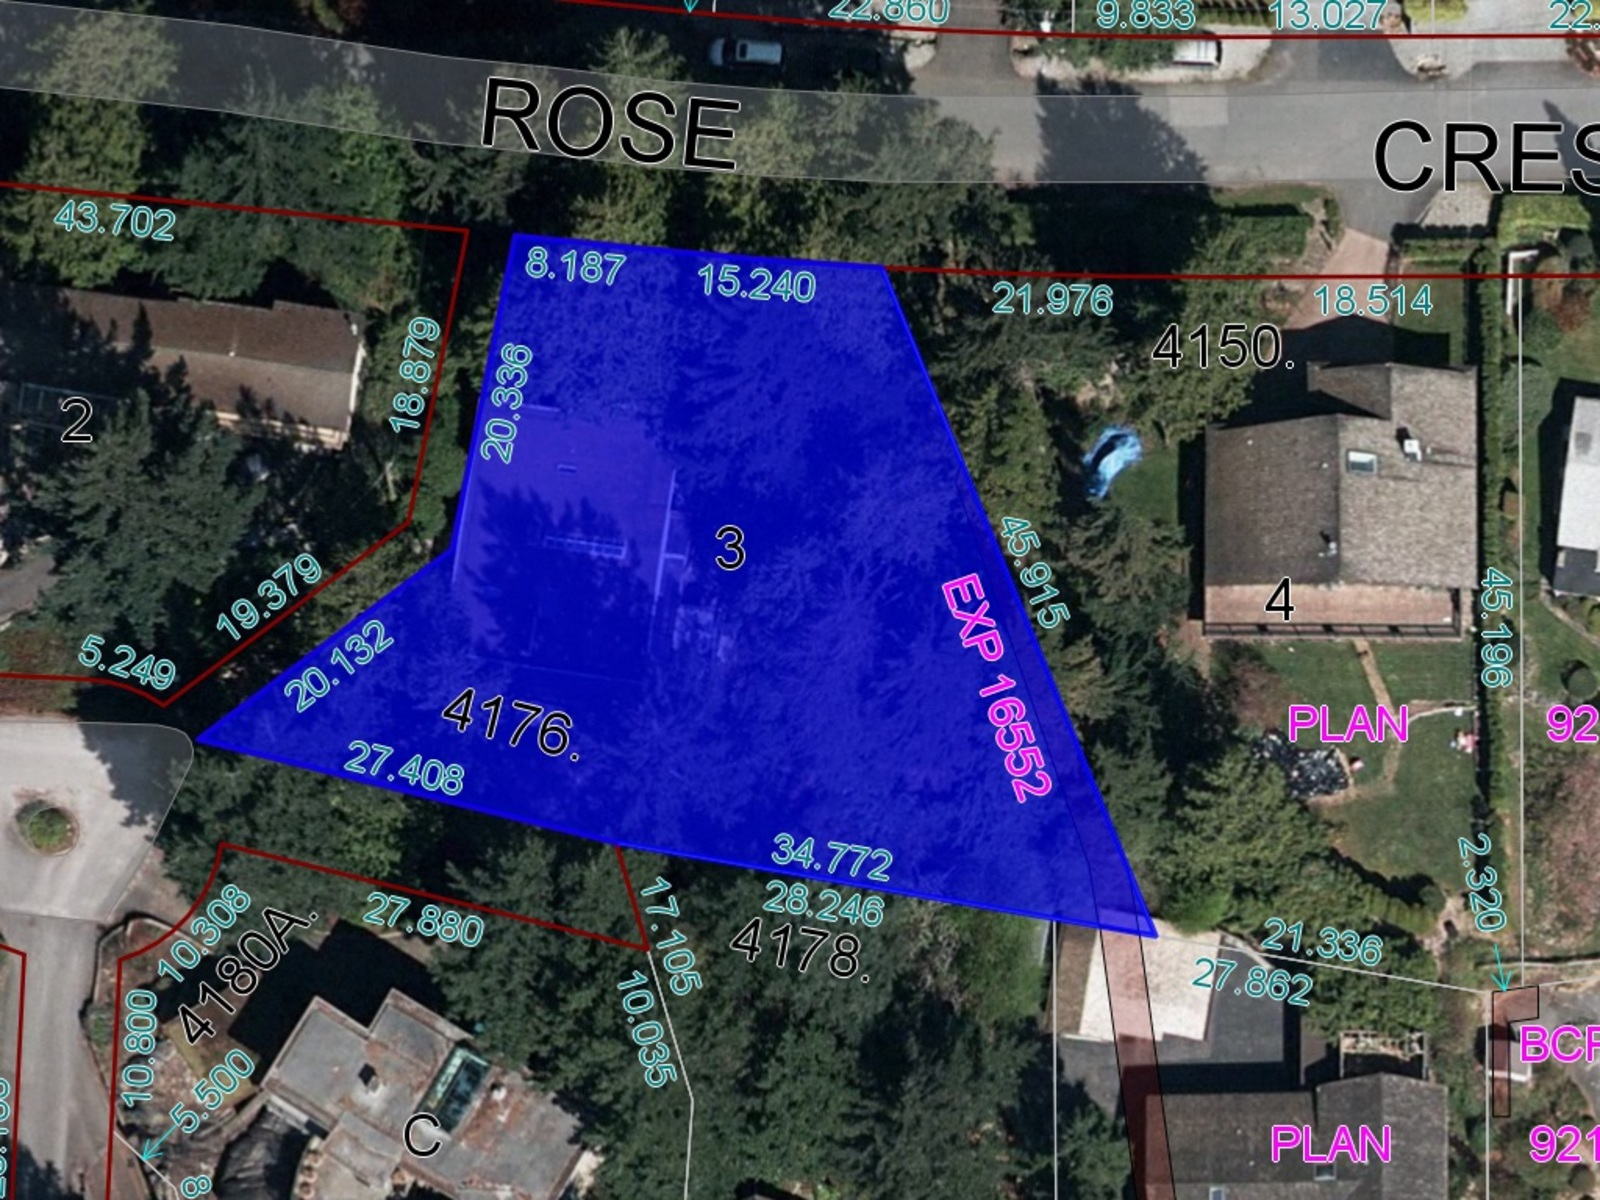 4176-Rose-Crescent---GIS at 4176 Rose Crescent, Sandy Cove, West Vancouver